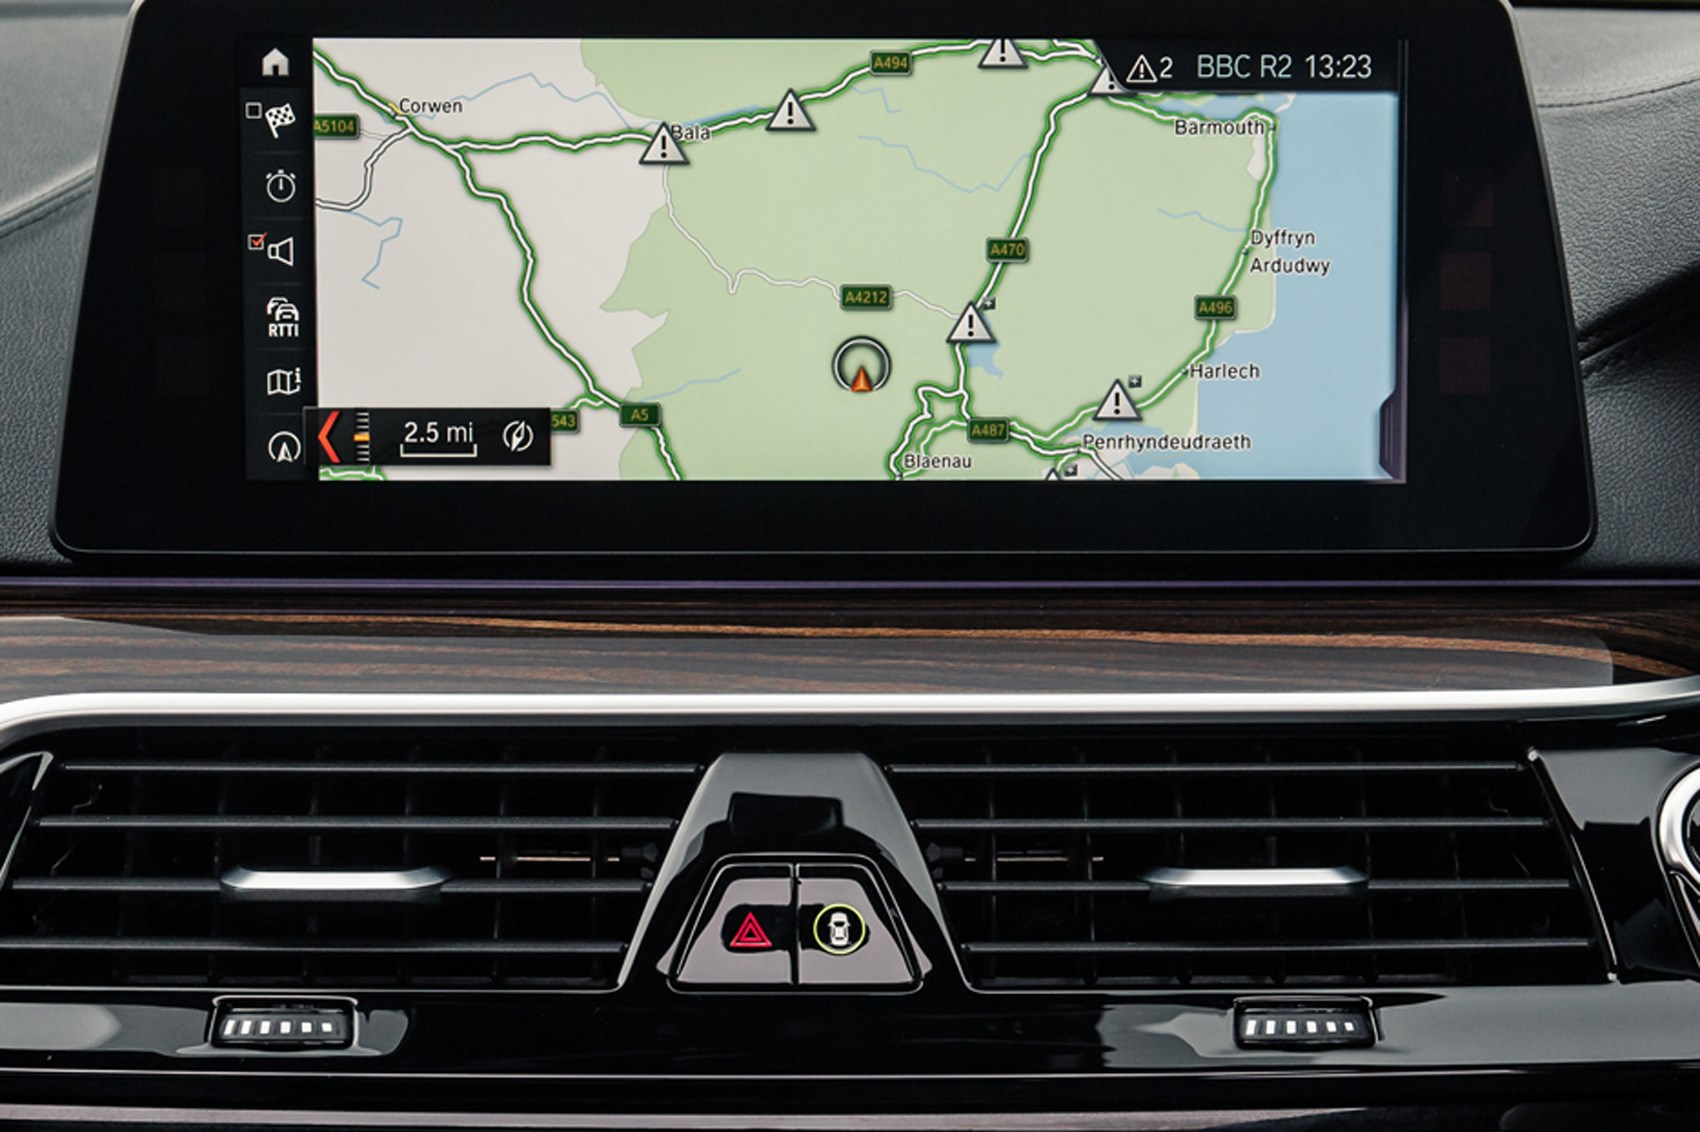 The iDrive multimedia system as seen in the BMW 5 Series that we're expecting in the 2018 3 Series